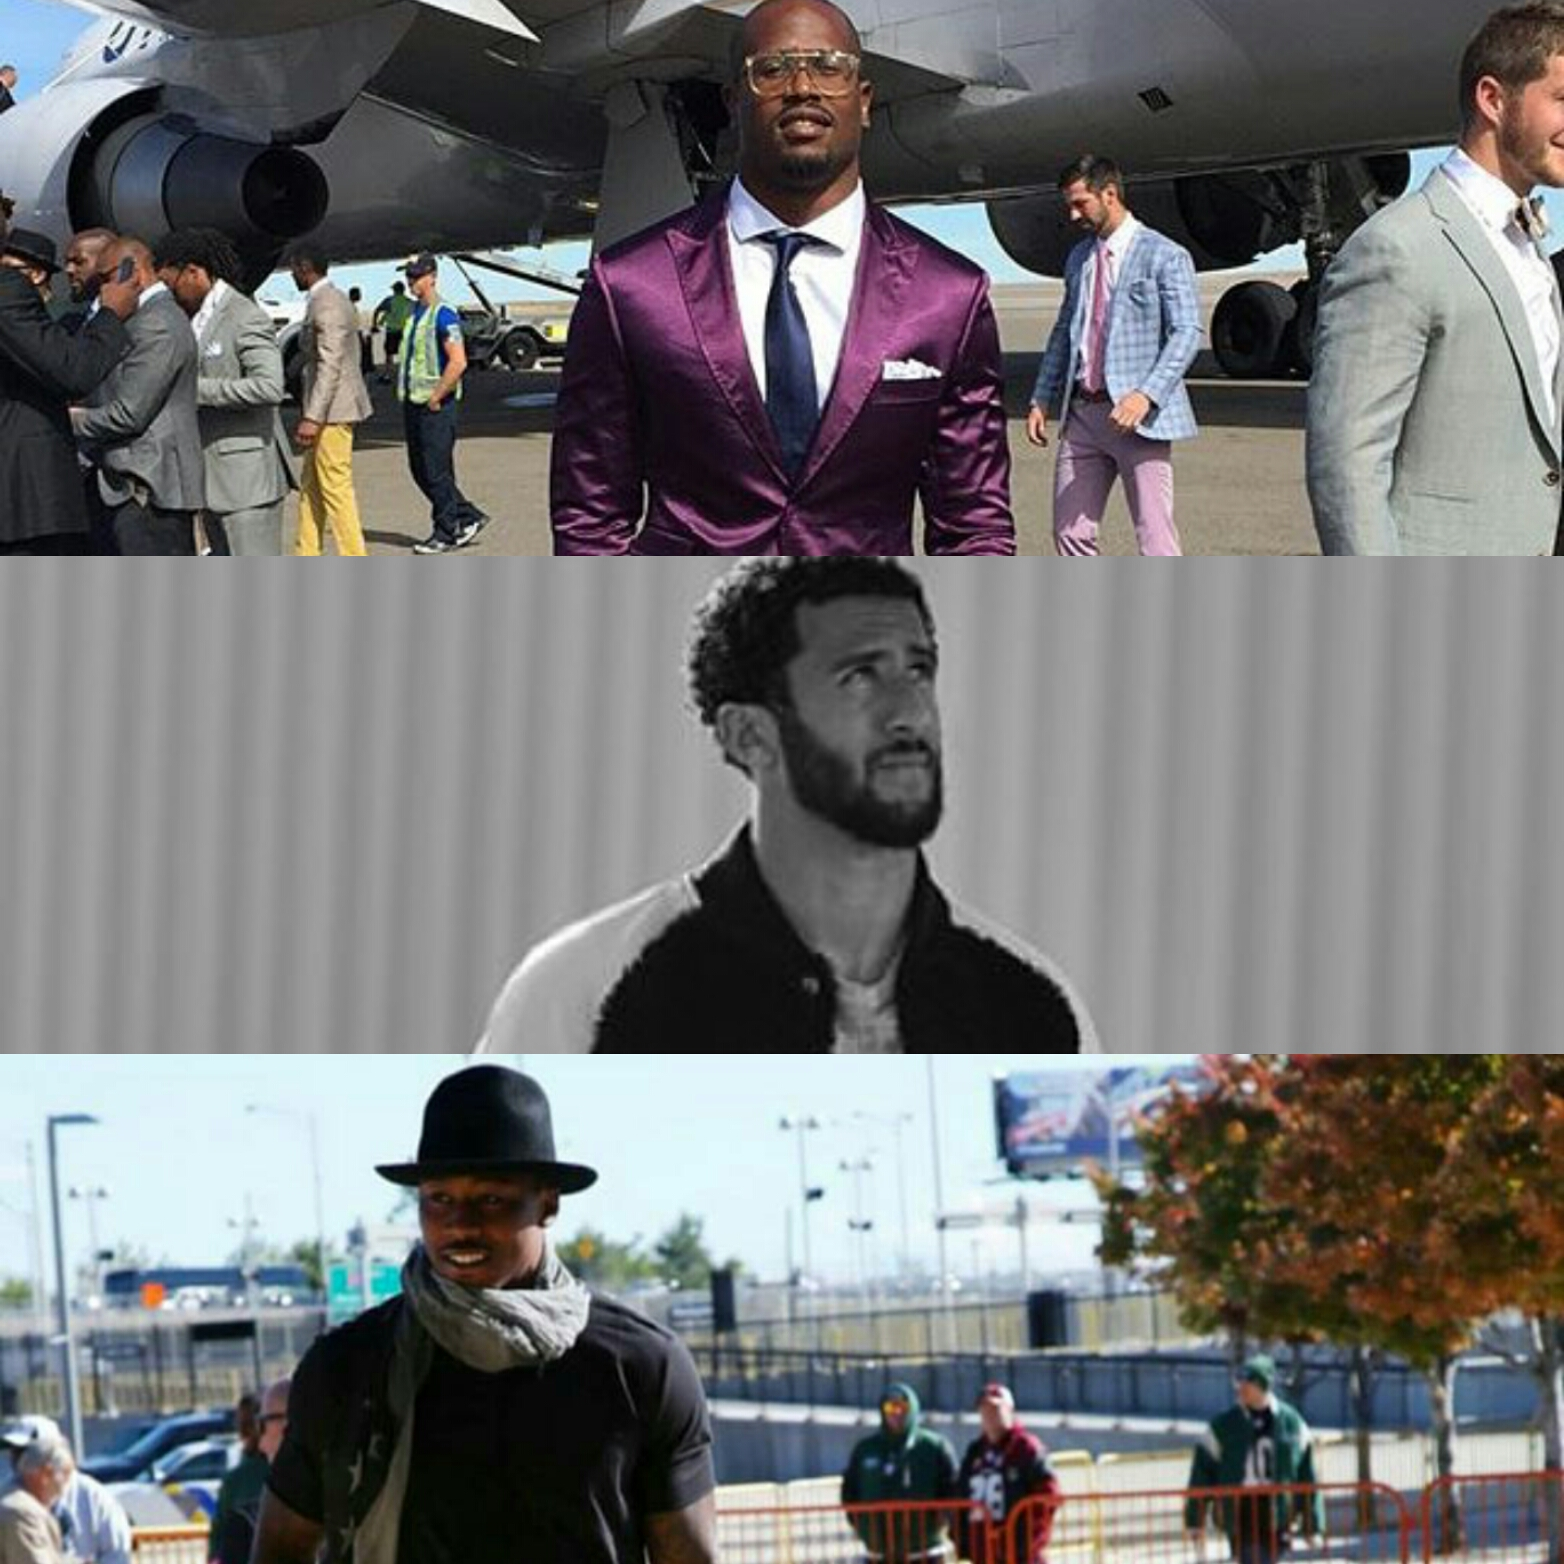 STYLE: Brandon Marshall, Von Miller, Drew Brees & More